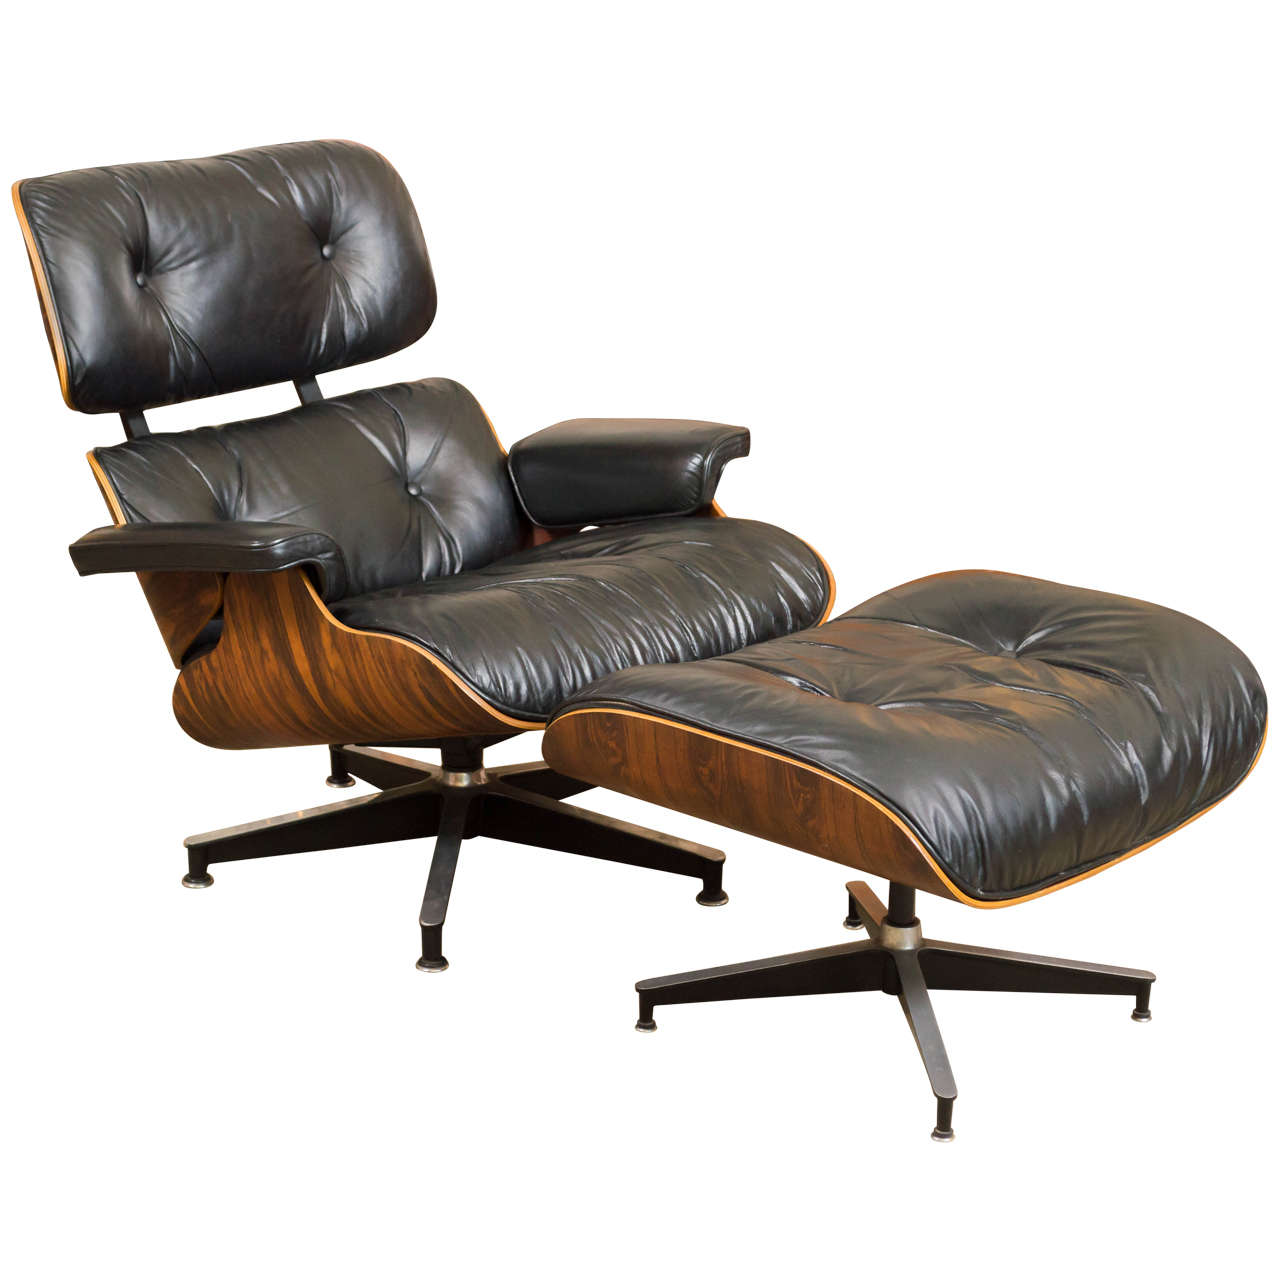 Herman miller chair - Eames Rosewood Lounge Chair 670 And Ottoman 671 For Herman Miller 1